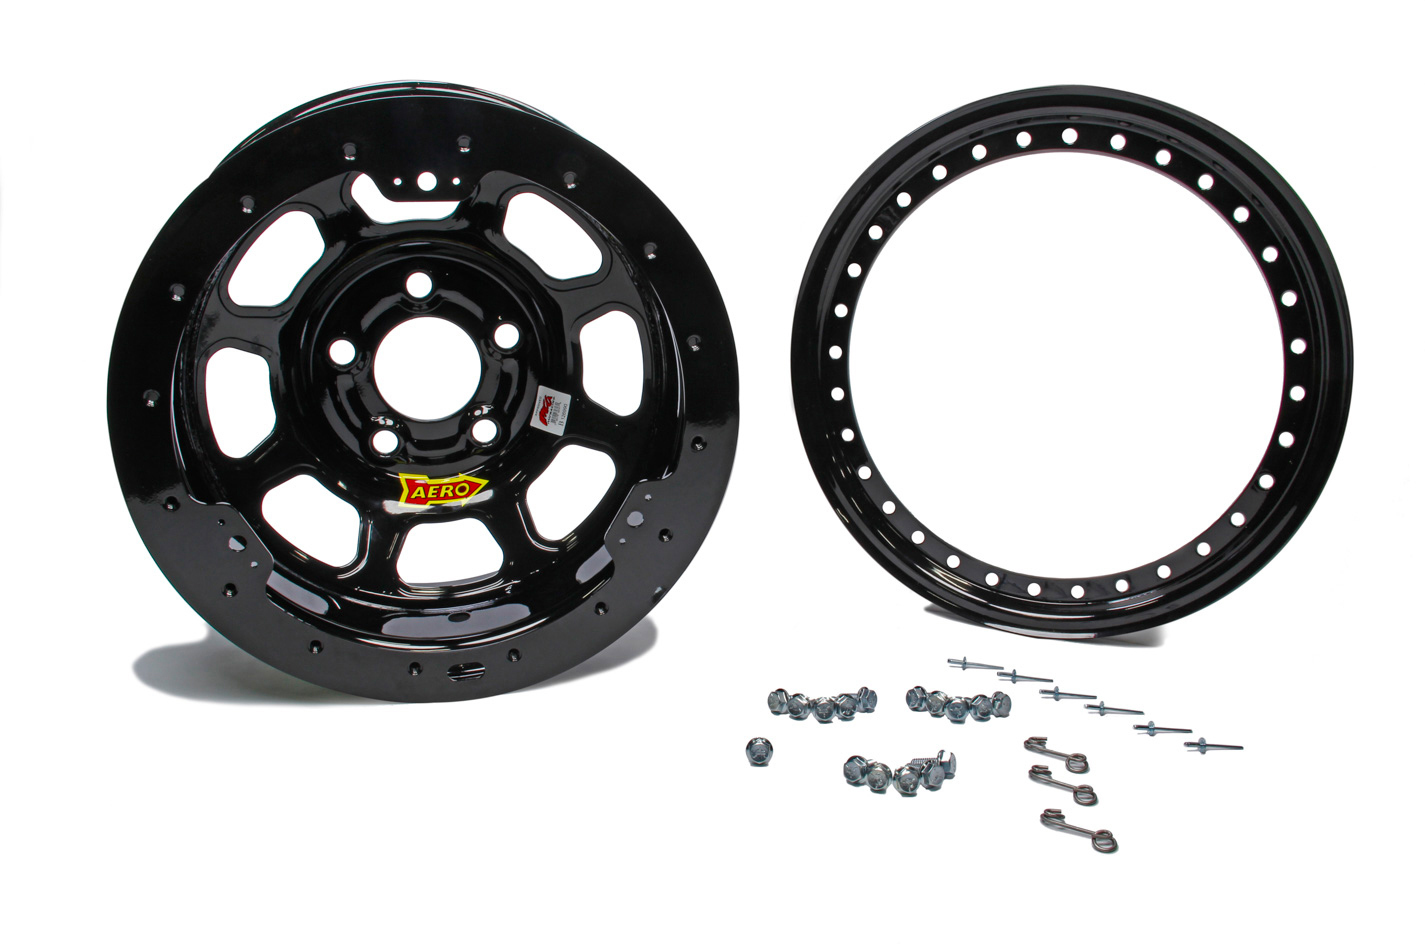 Aero Race 13x8 3in. 4.00 Black Beadlock Wheel